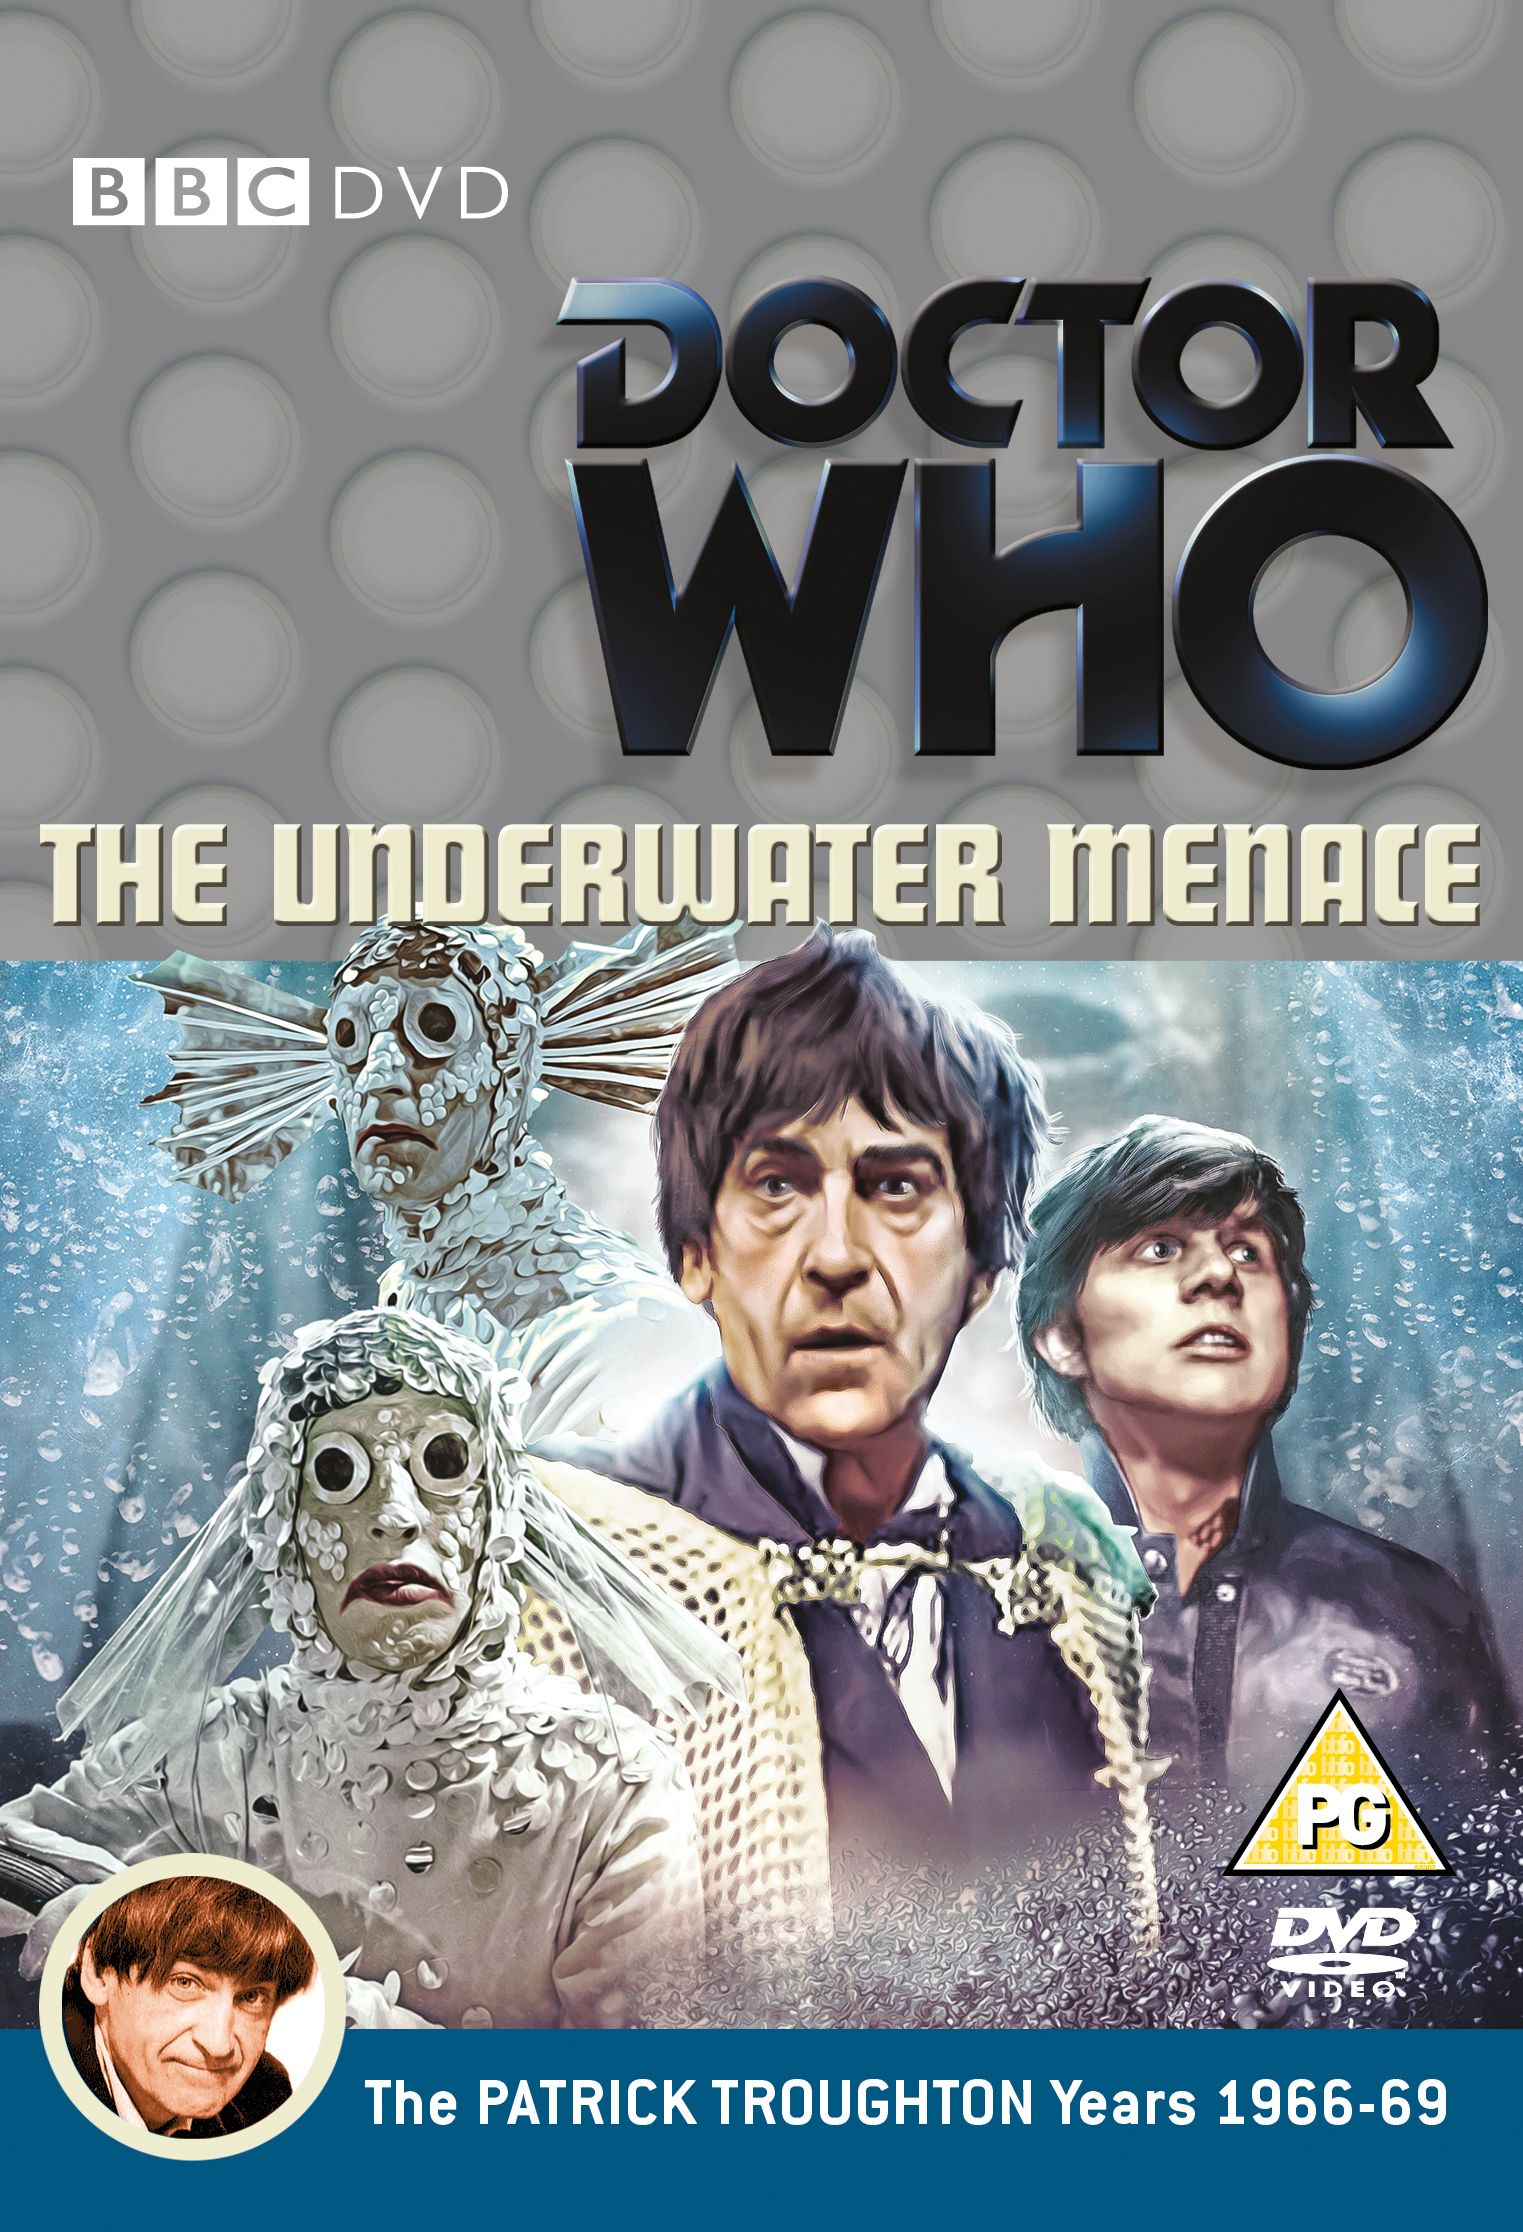 The Underwater Menace - DVD cover (Credit: BBC Worldwide)